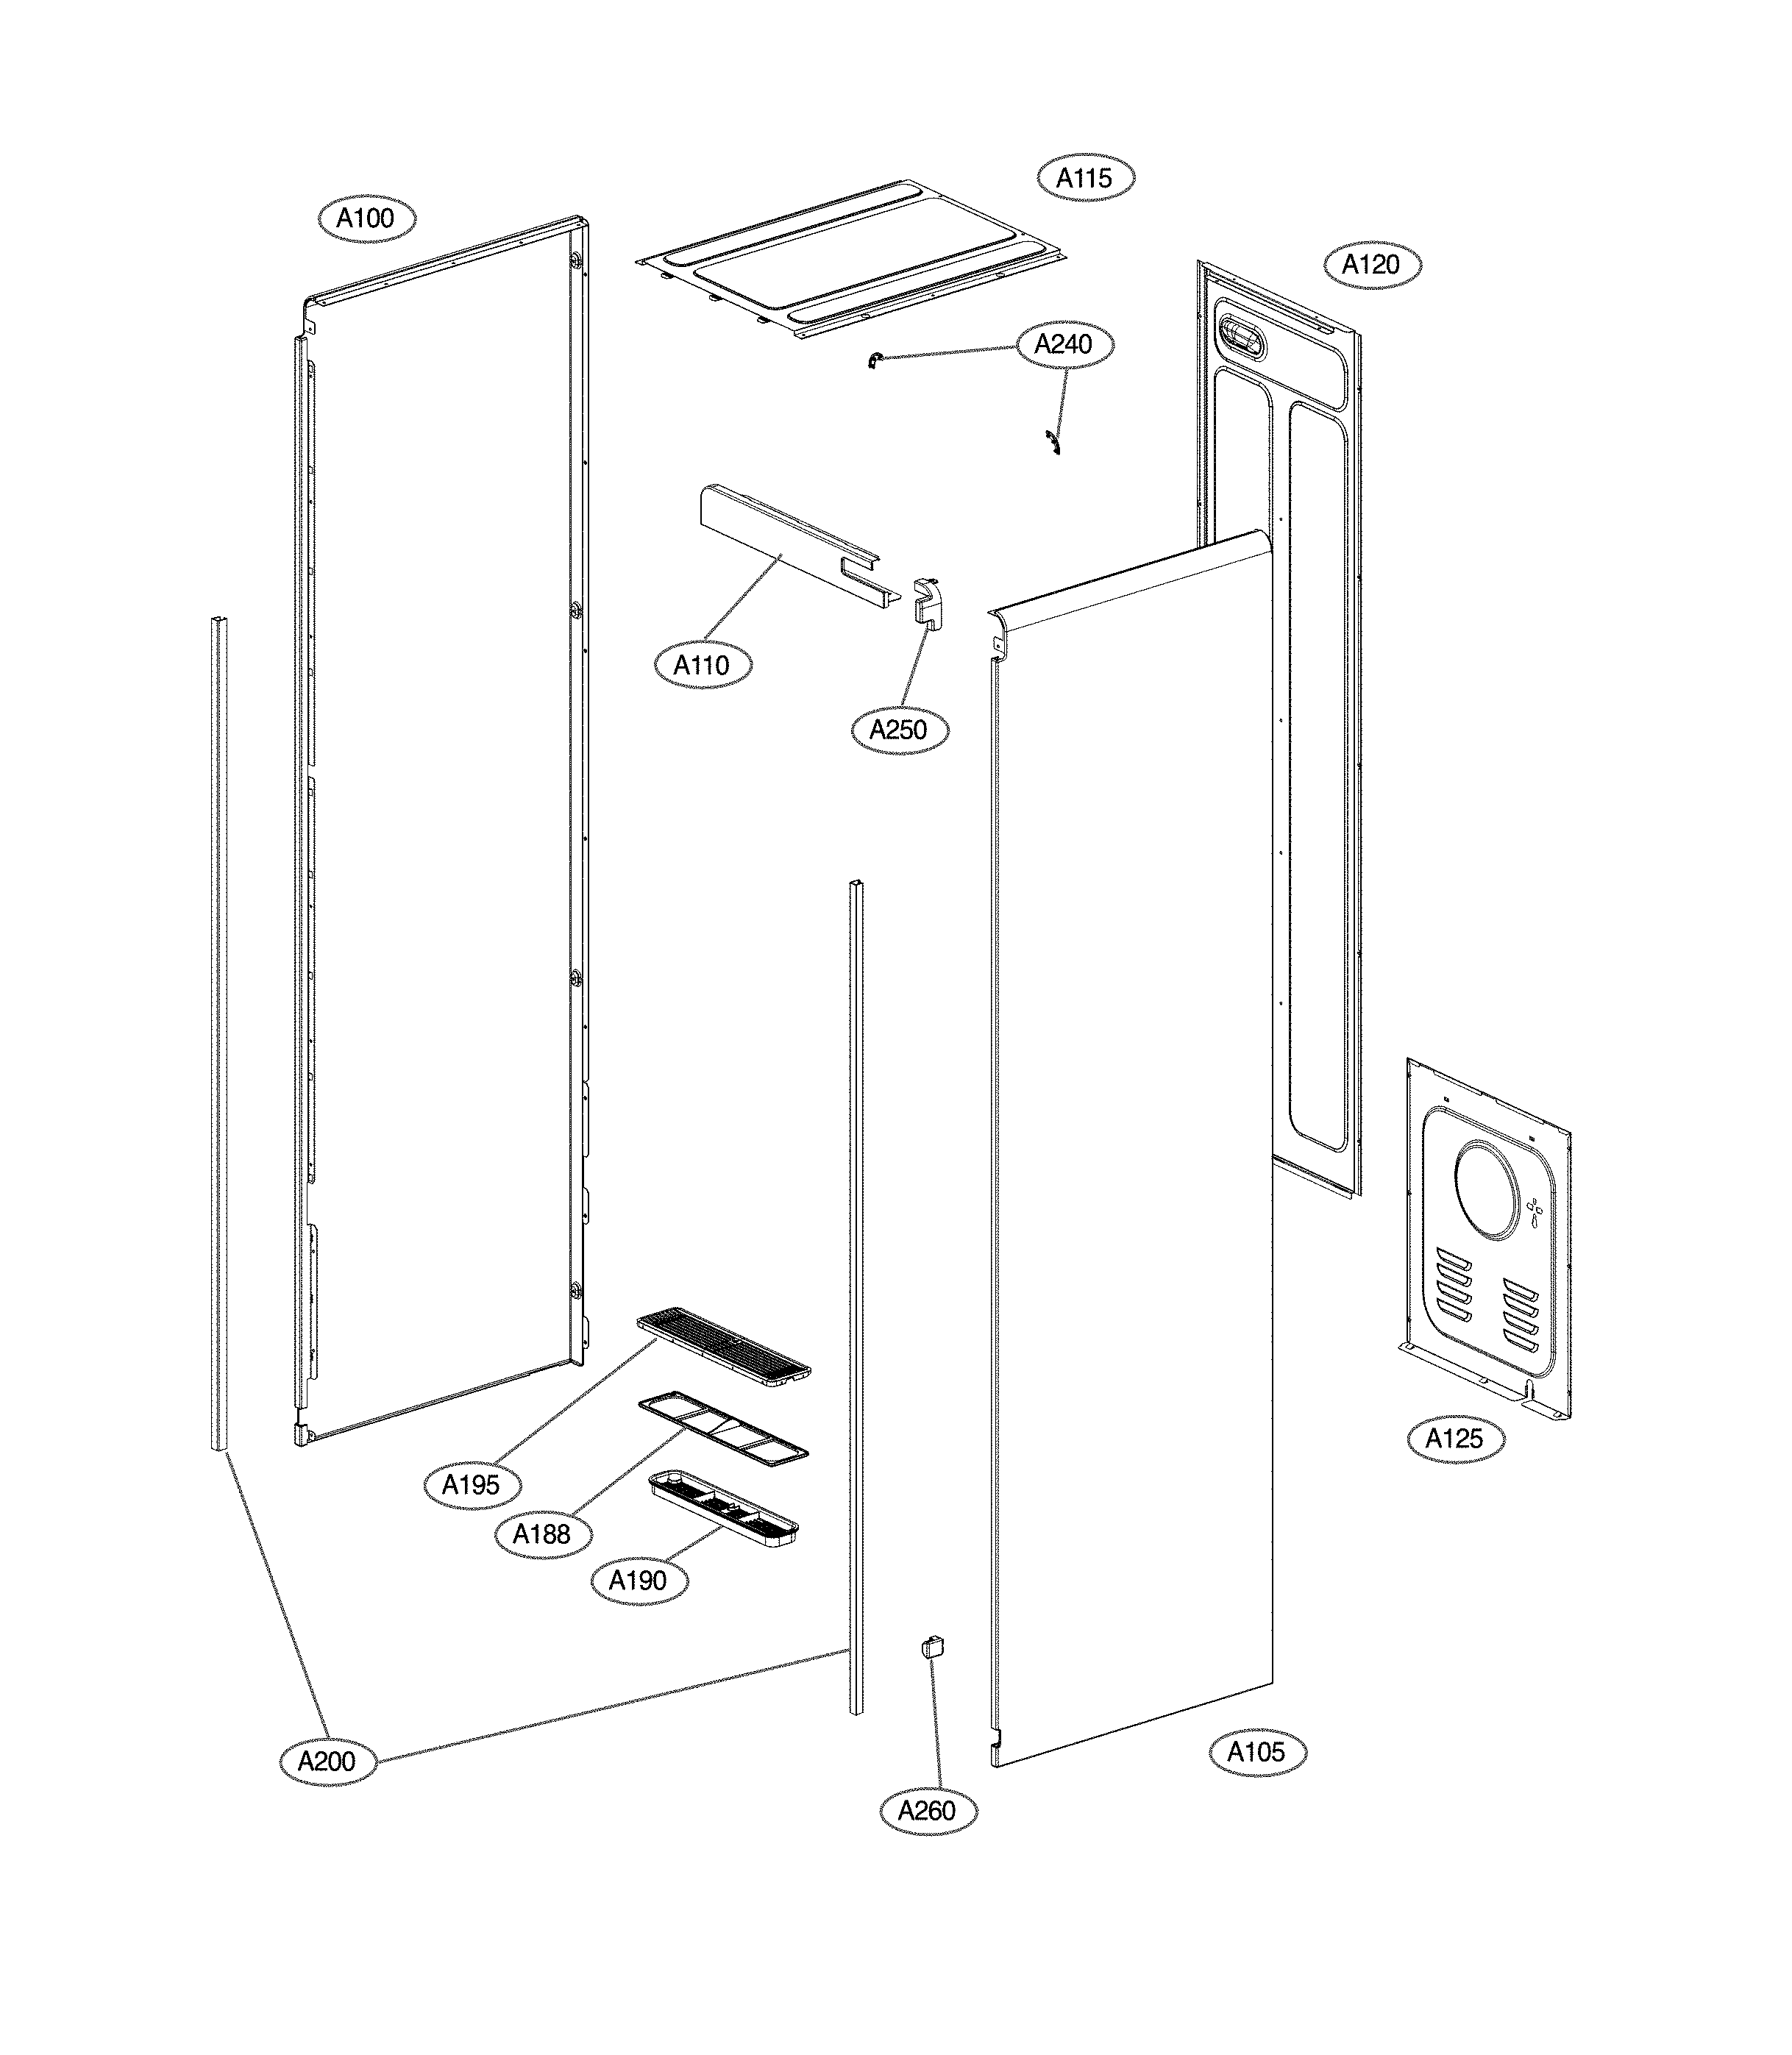 LG S3RERB exploded view parts diagram